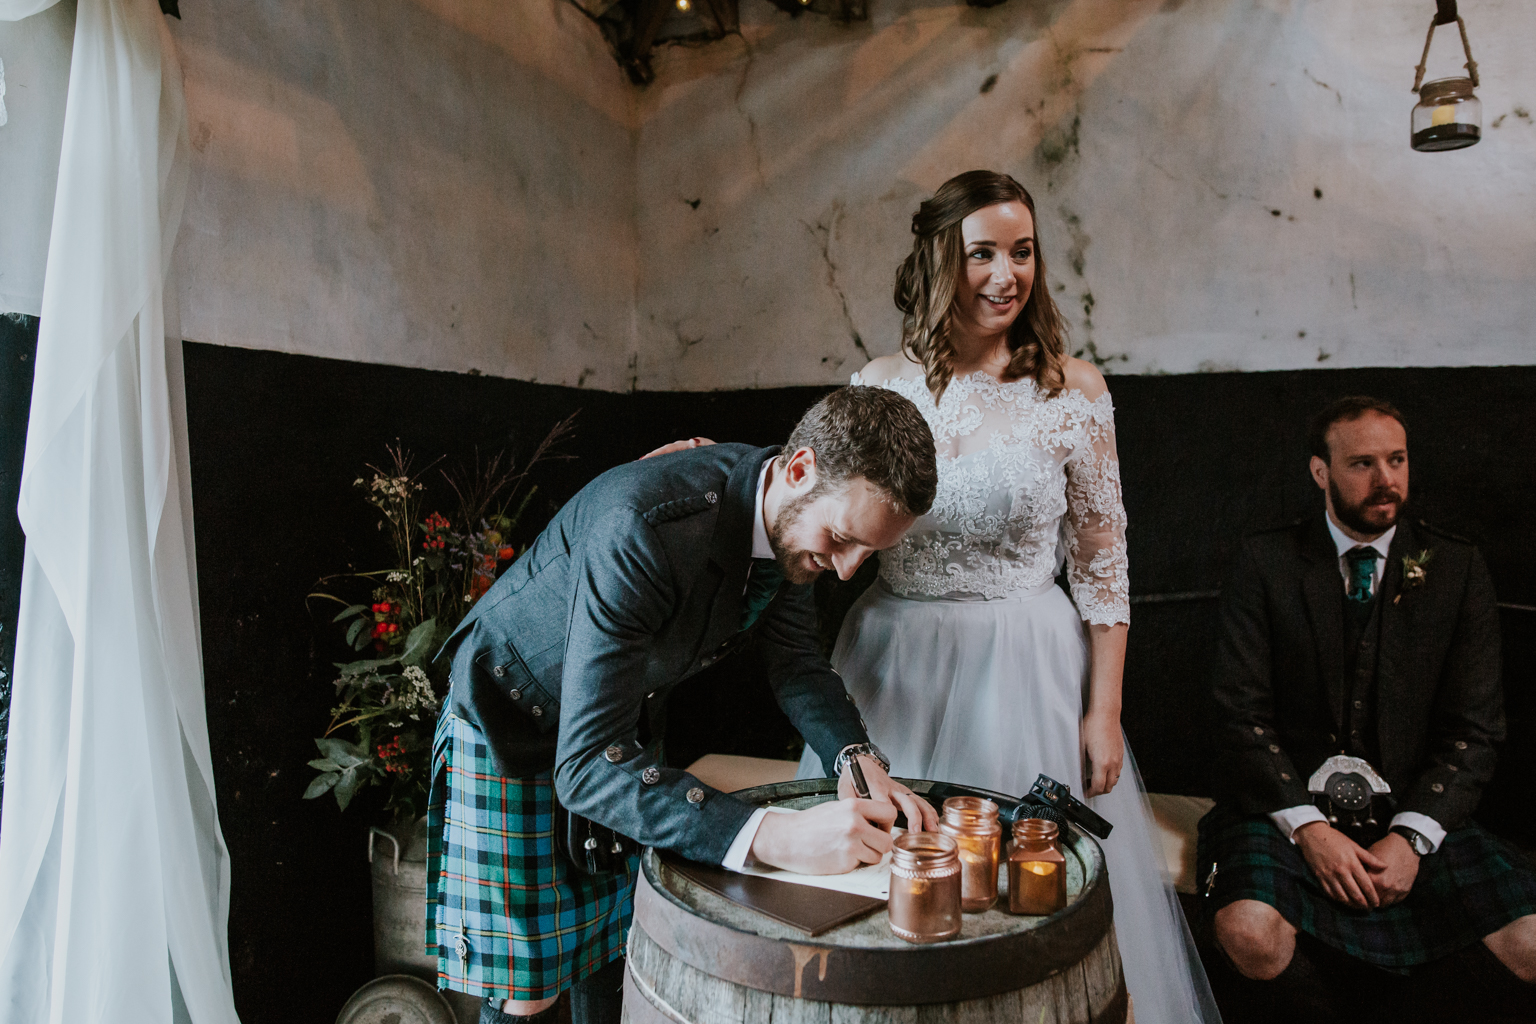 The groom is signing the marriage document. Harelaw farm wedding photographer